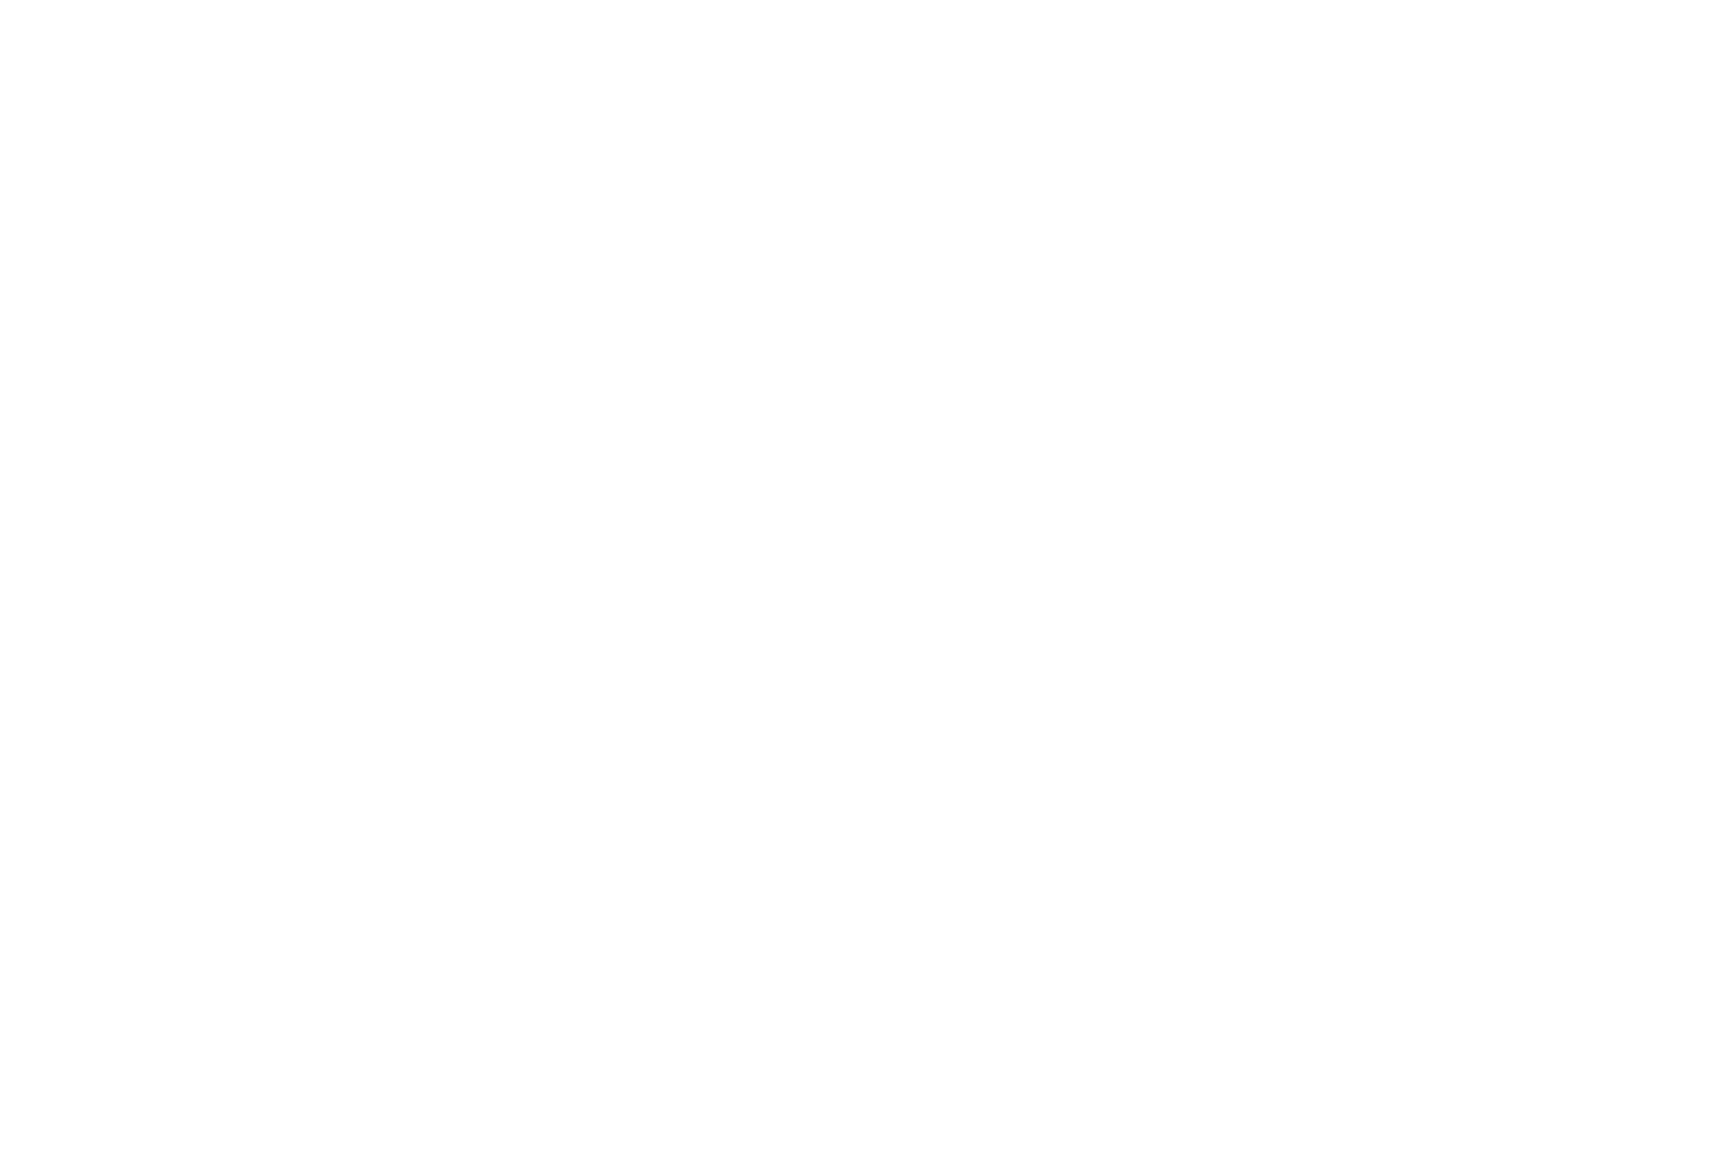 OFFICIAL SELECTION - Amarcord Arthouse Television  Video Awards Dec 16 - Masc Only.png